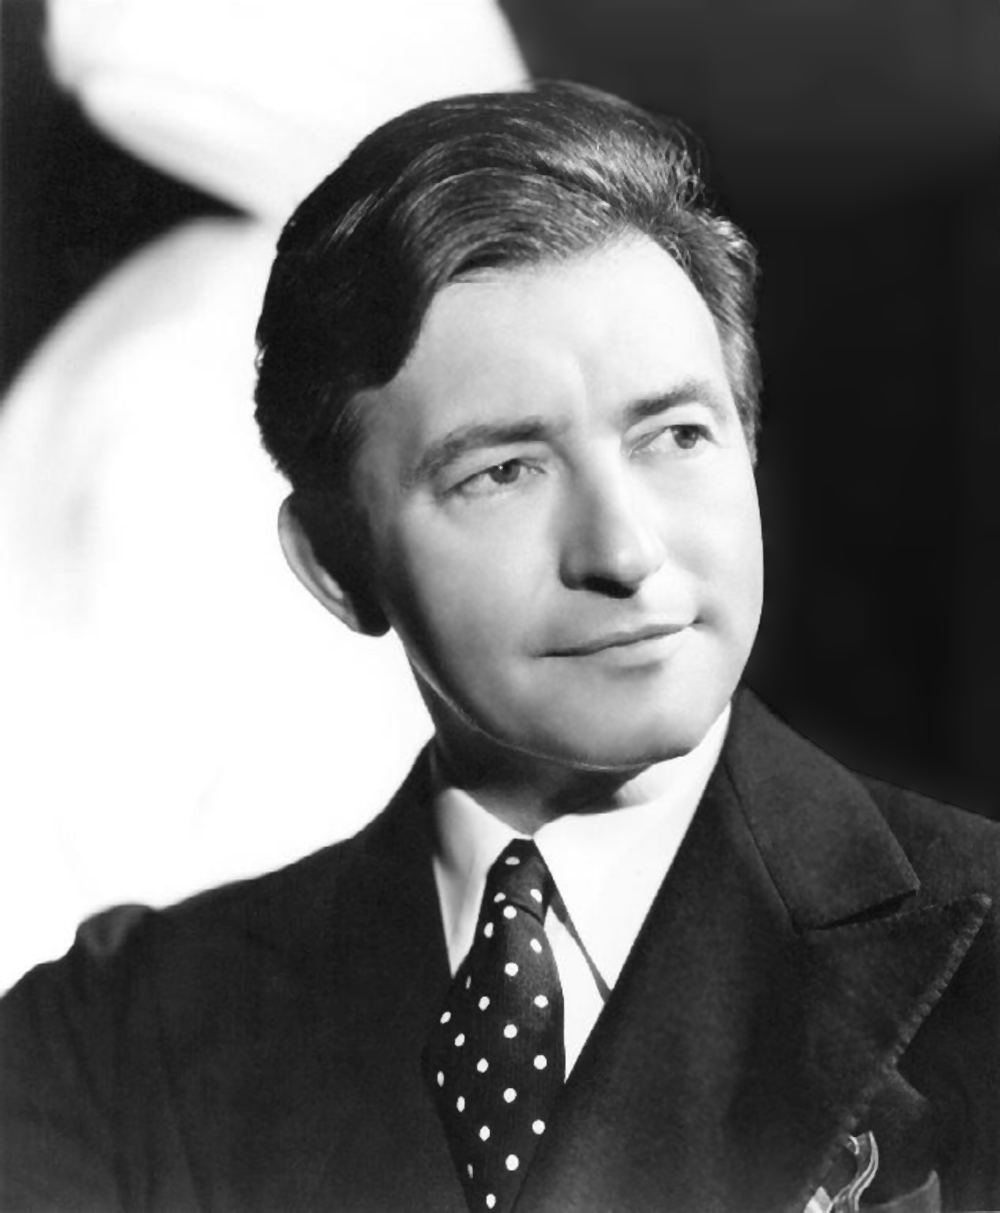 claude rains actorclaude rains invisible man, claude rains and bette davis, claude rains, claude rains heroes, claude rains actor, claude rains you say lyrics, claude rains imdb, claude rains casablanca, claude rains phantom of the opera, claude rains bette davis, claude rains grave, claude rains quotes, claude rains daughter, claude rains shocked, claude rains casablanca quotes, claude rains gay, claude rains west chester pa, claude rains band, claude rains movies youtube